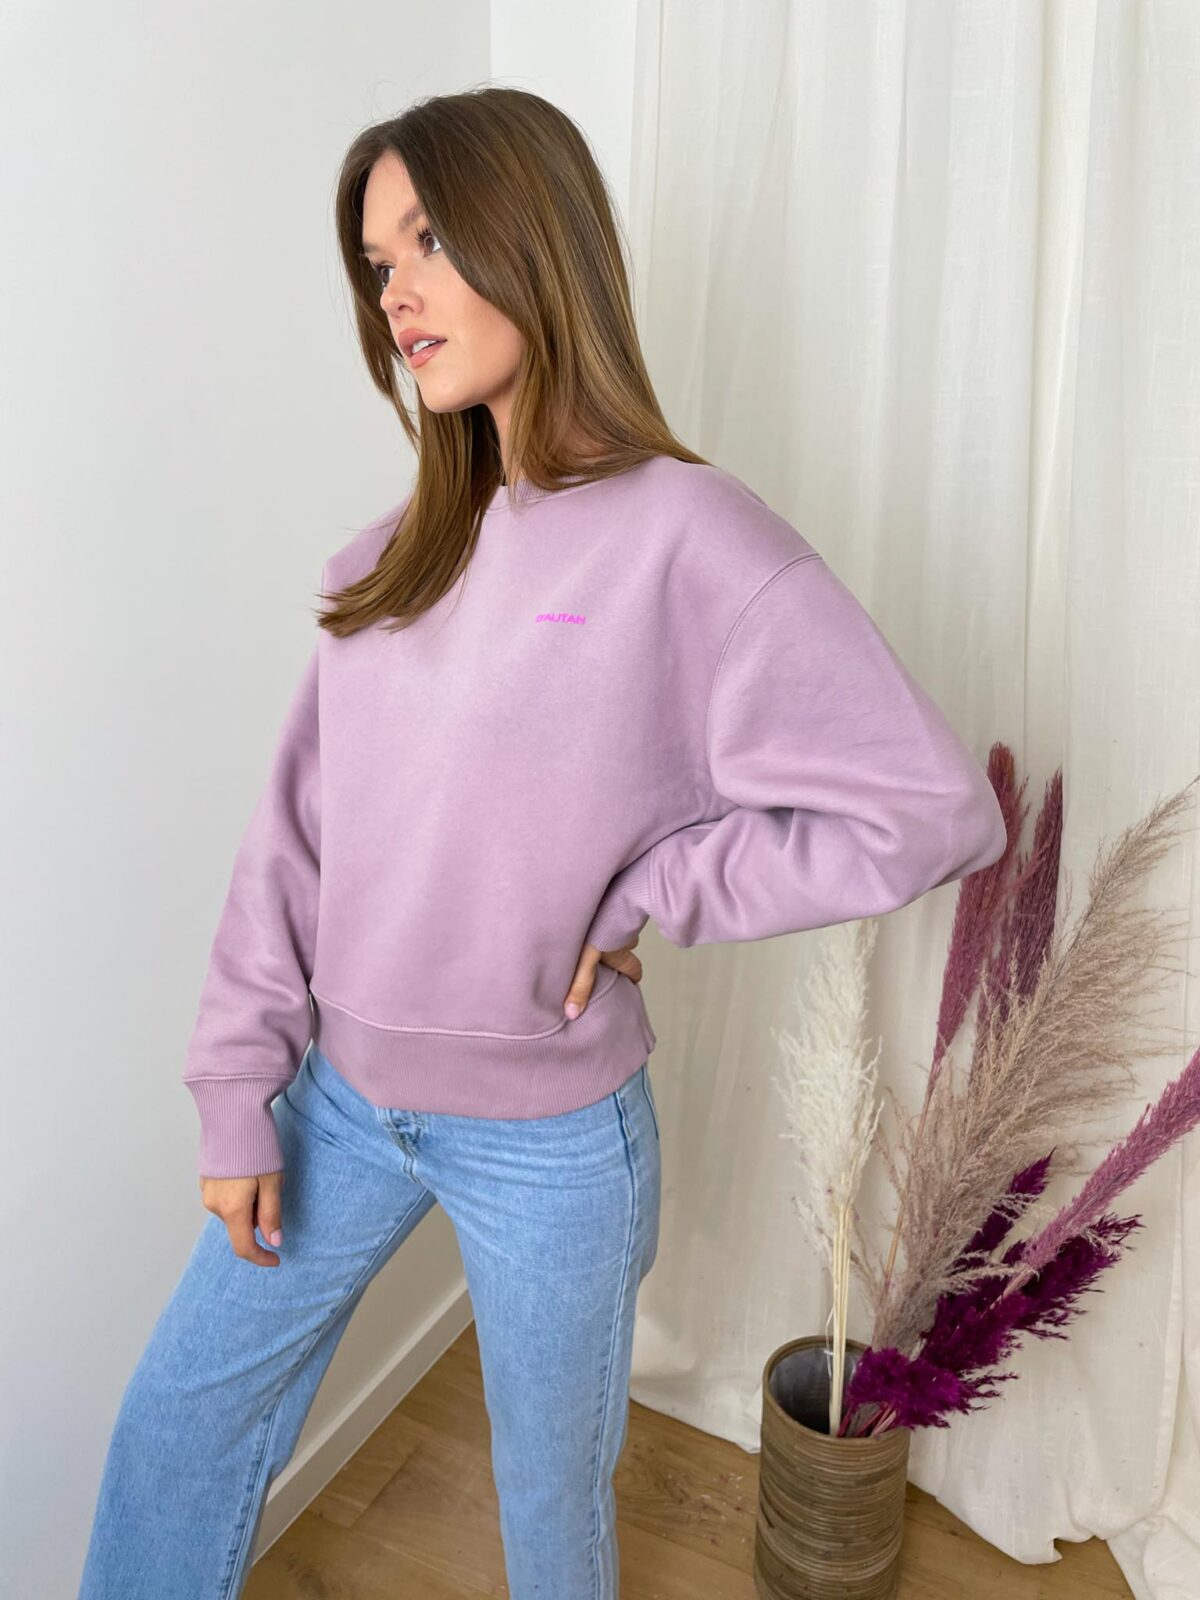 woman with a lilac sweater and denim pants